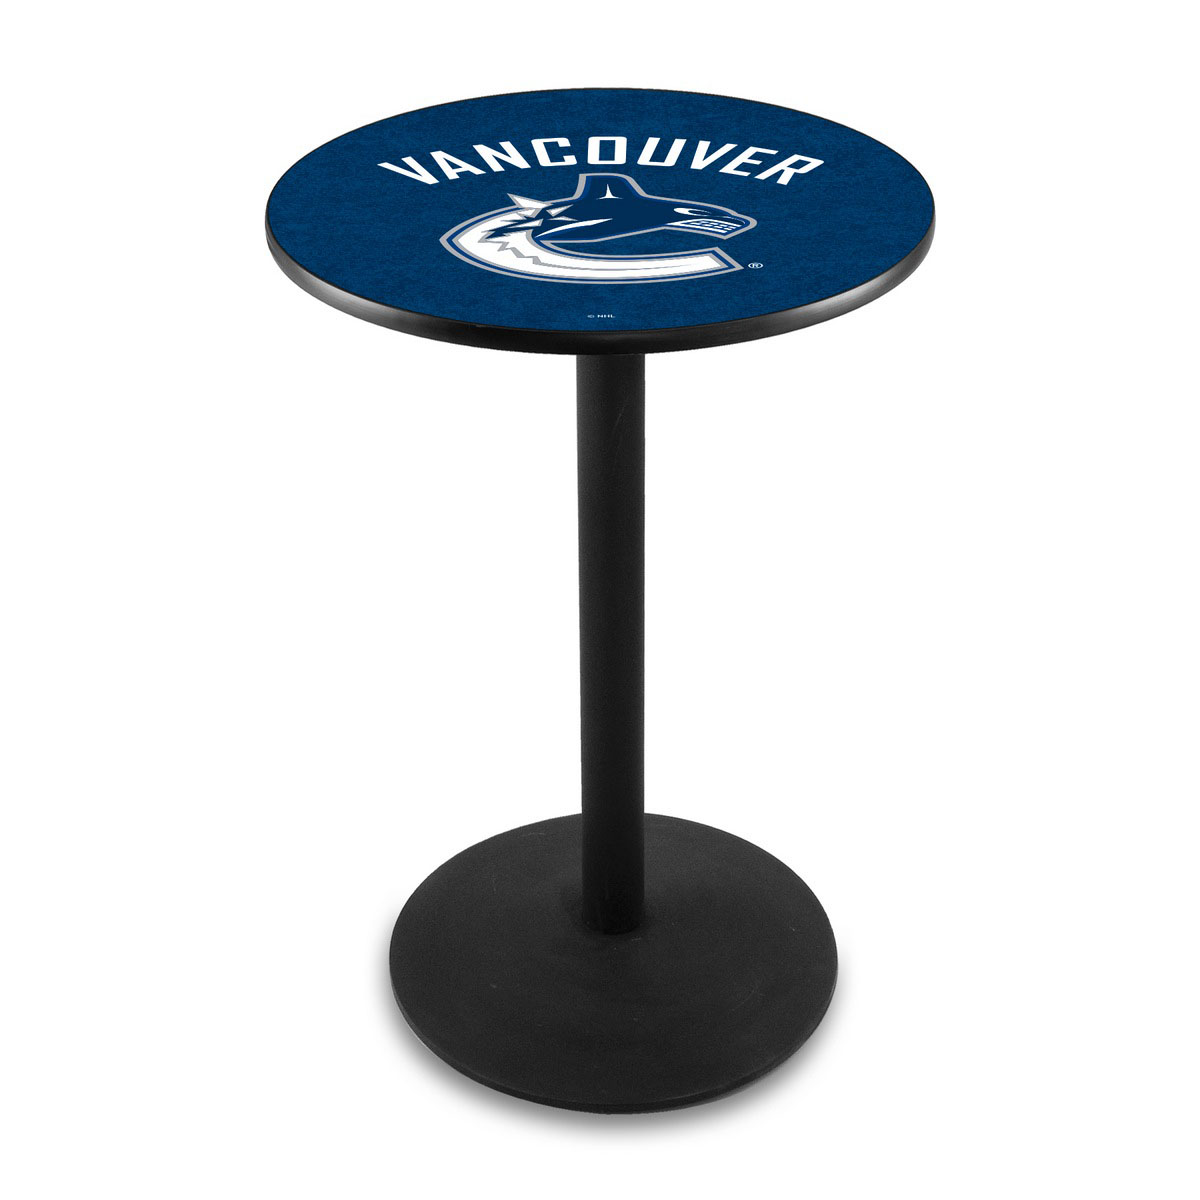 Stylish Vancouver Canucks Logo Pub Bar Table Round Stand Product Photo